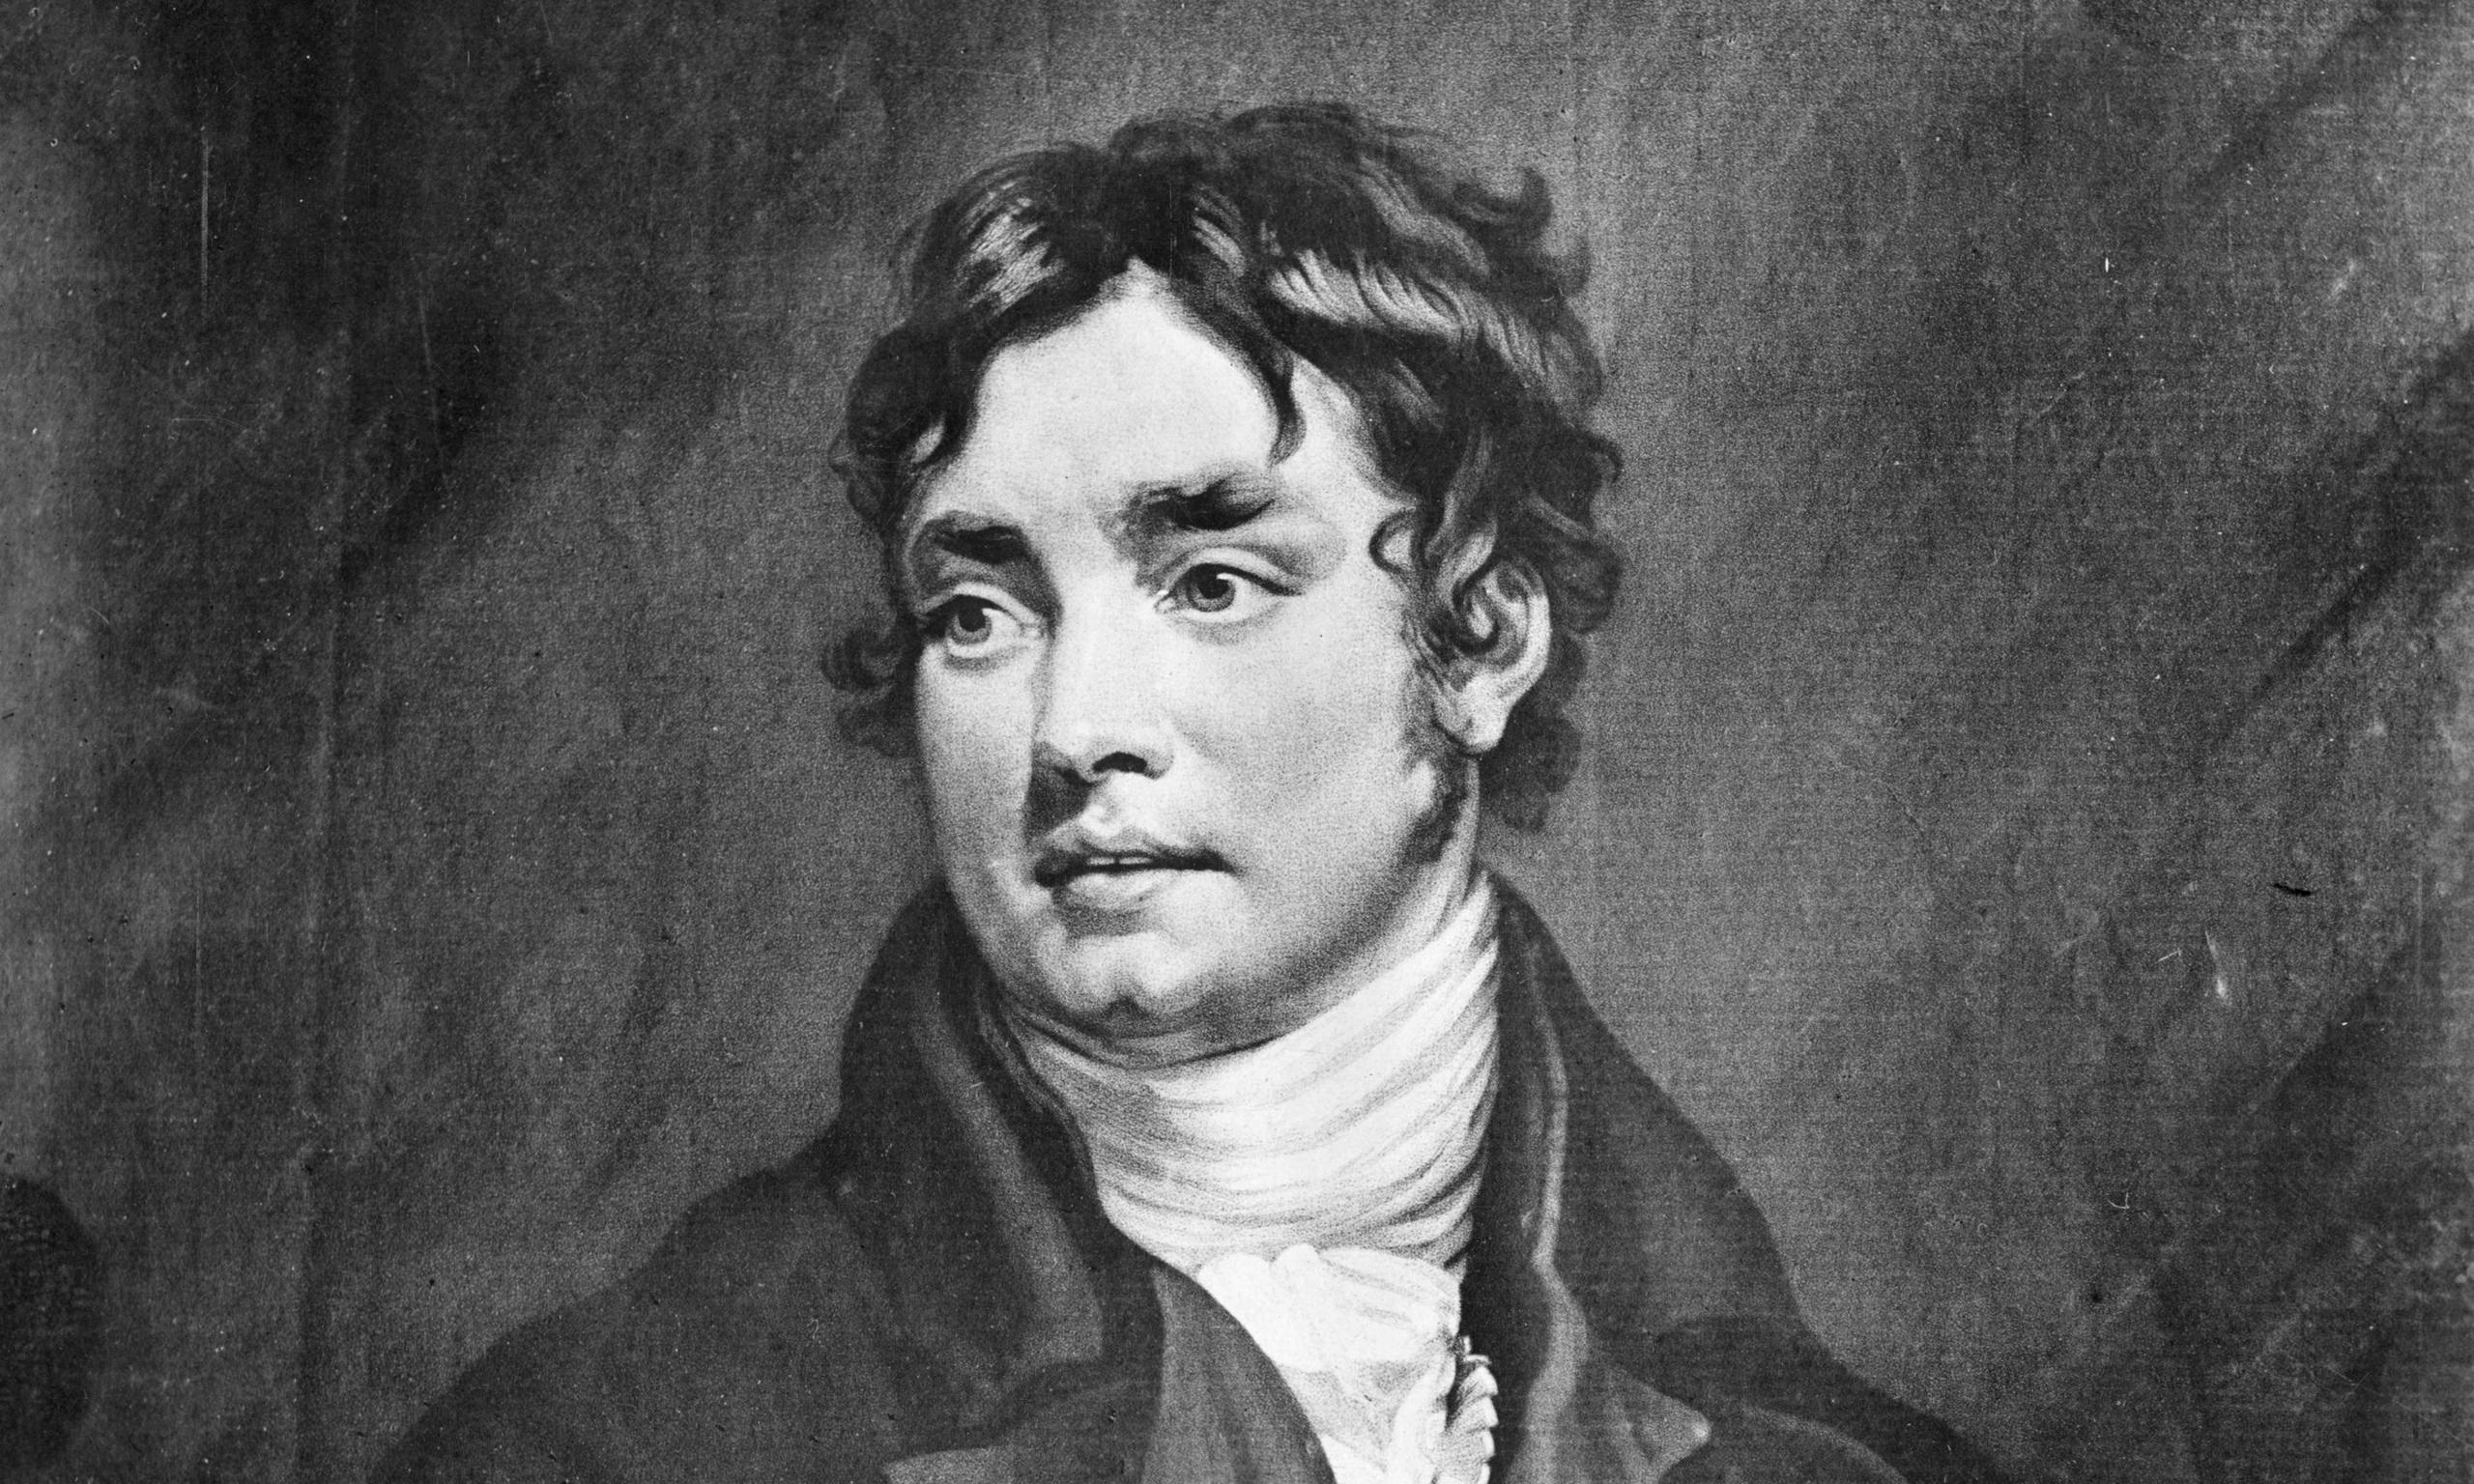 s t coleridge Home the collected works of samuel taylor coleridge, volume 15 addthis   the opus maximum gathers the last major body of unpublished prose writings by  samuel taylor coleridge consisting  41 william street.